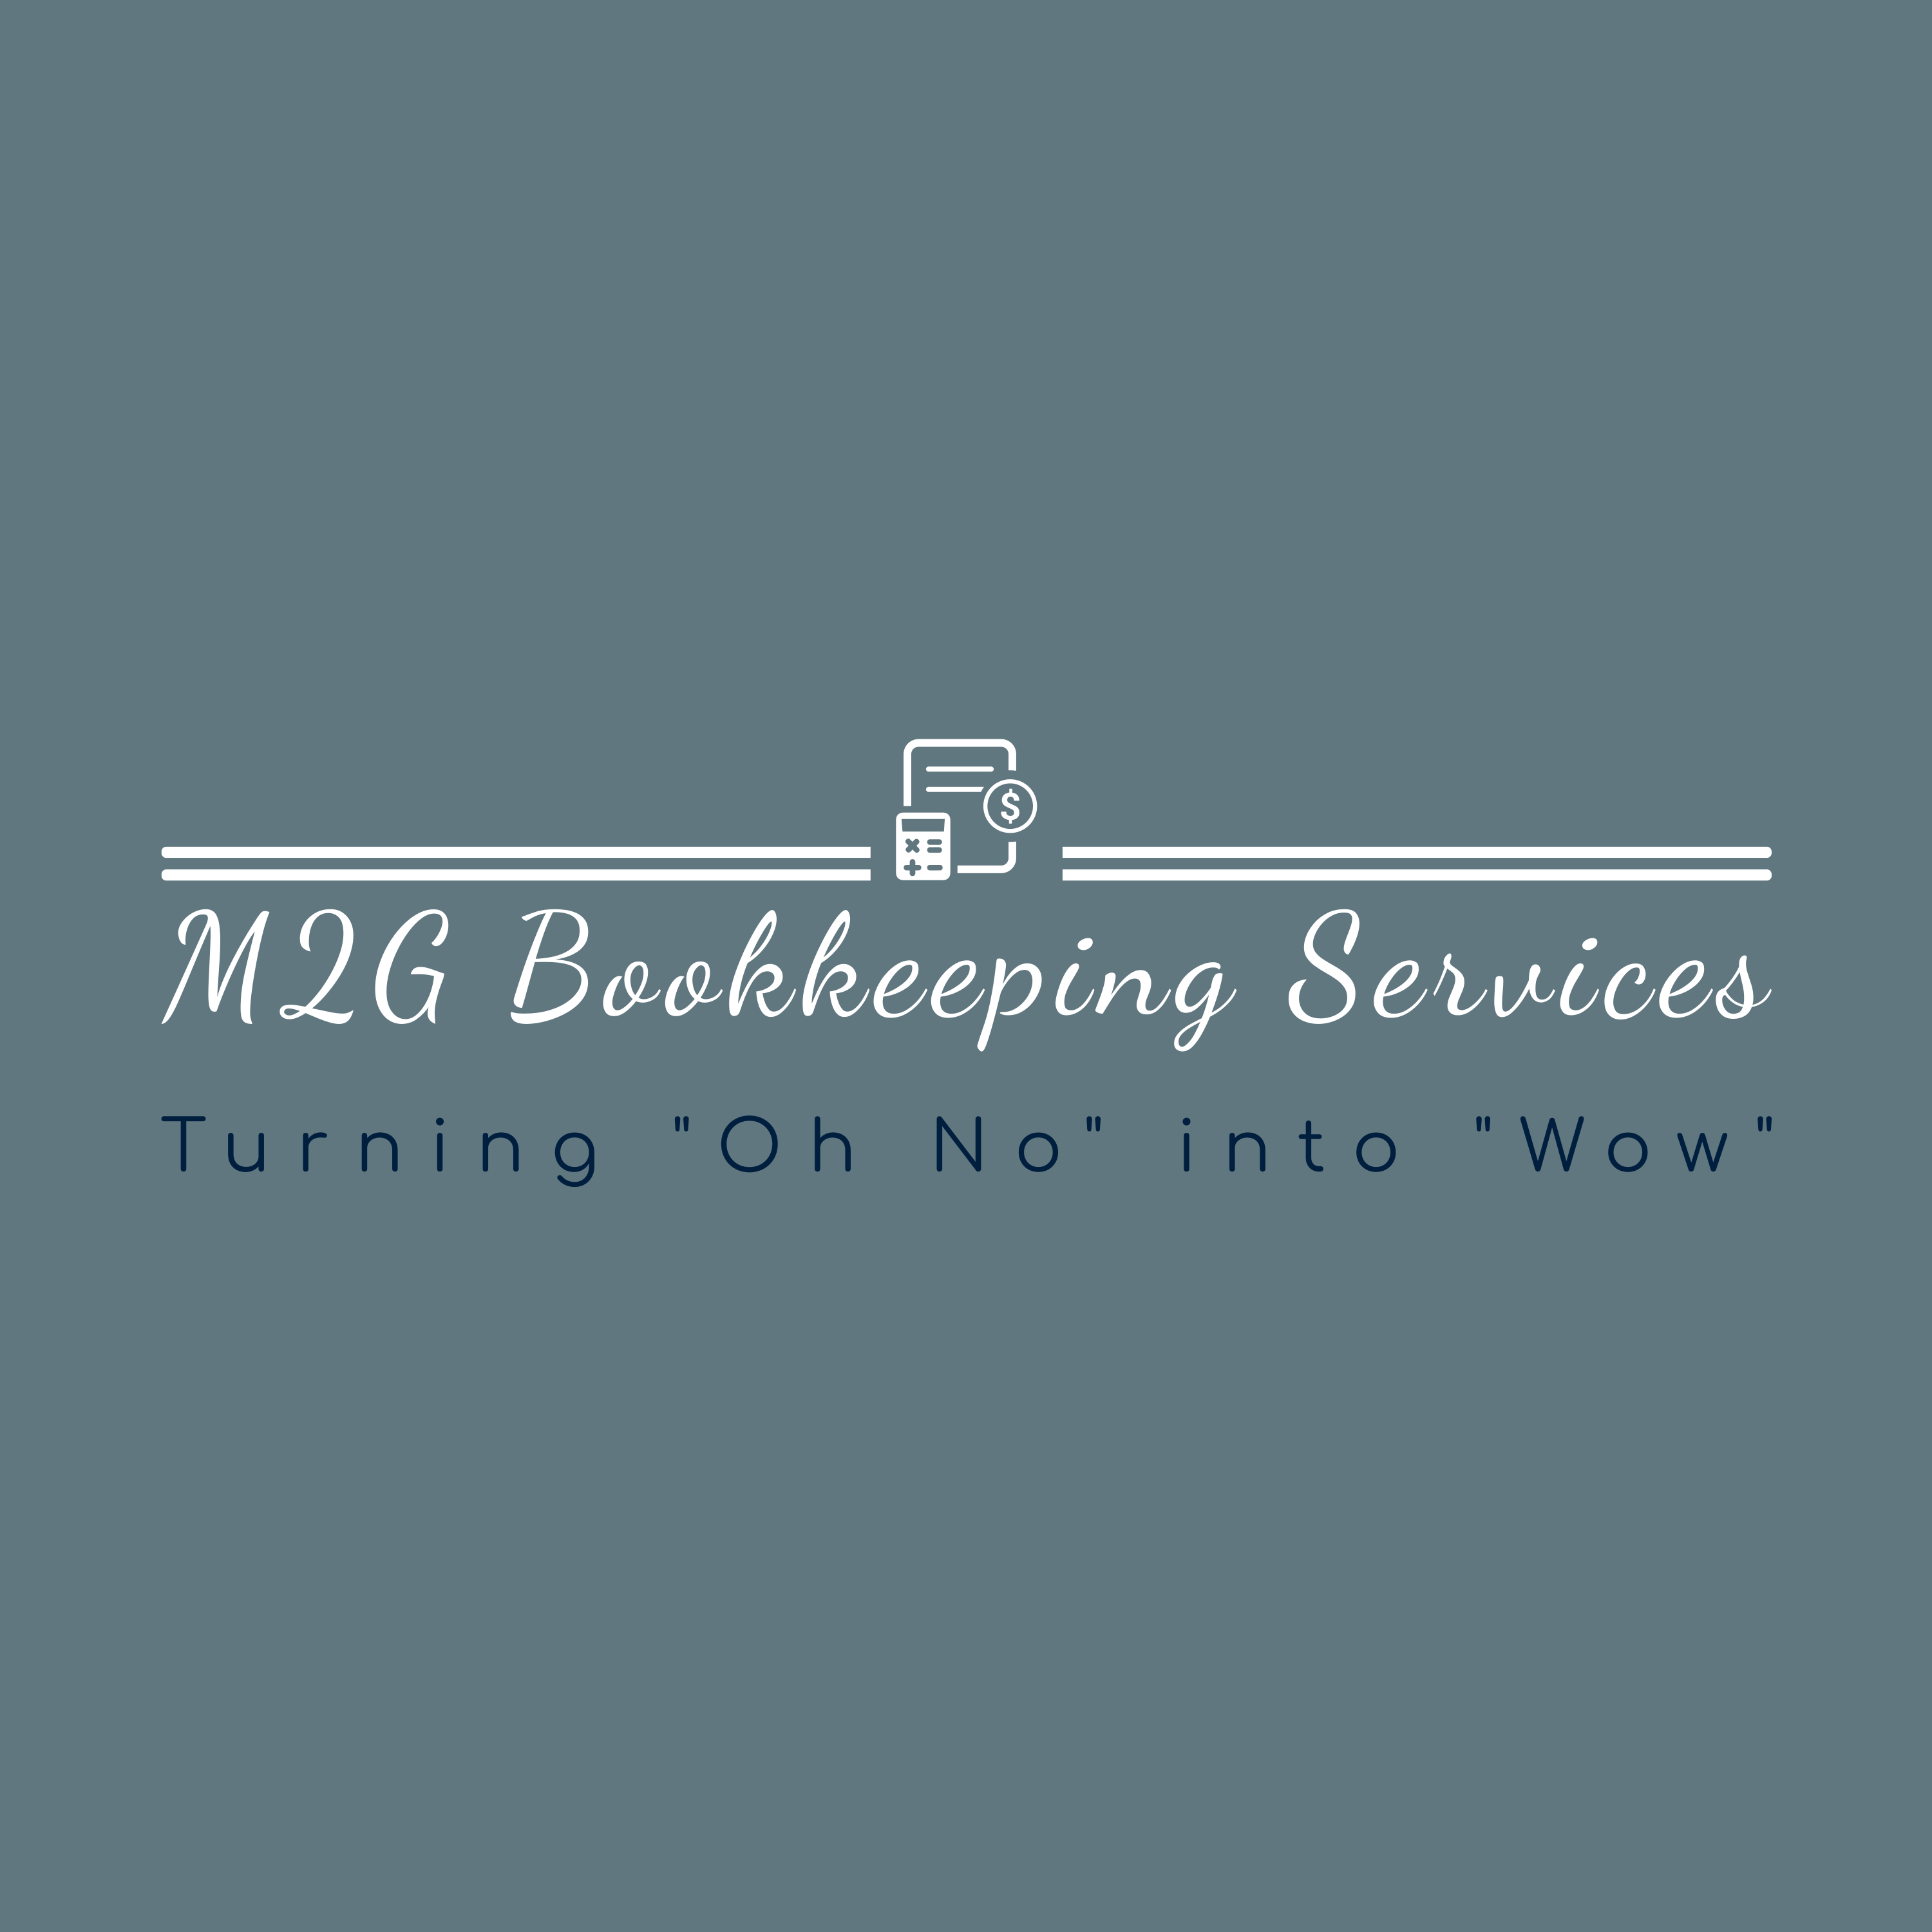 M2G Bookkeeping Services